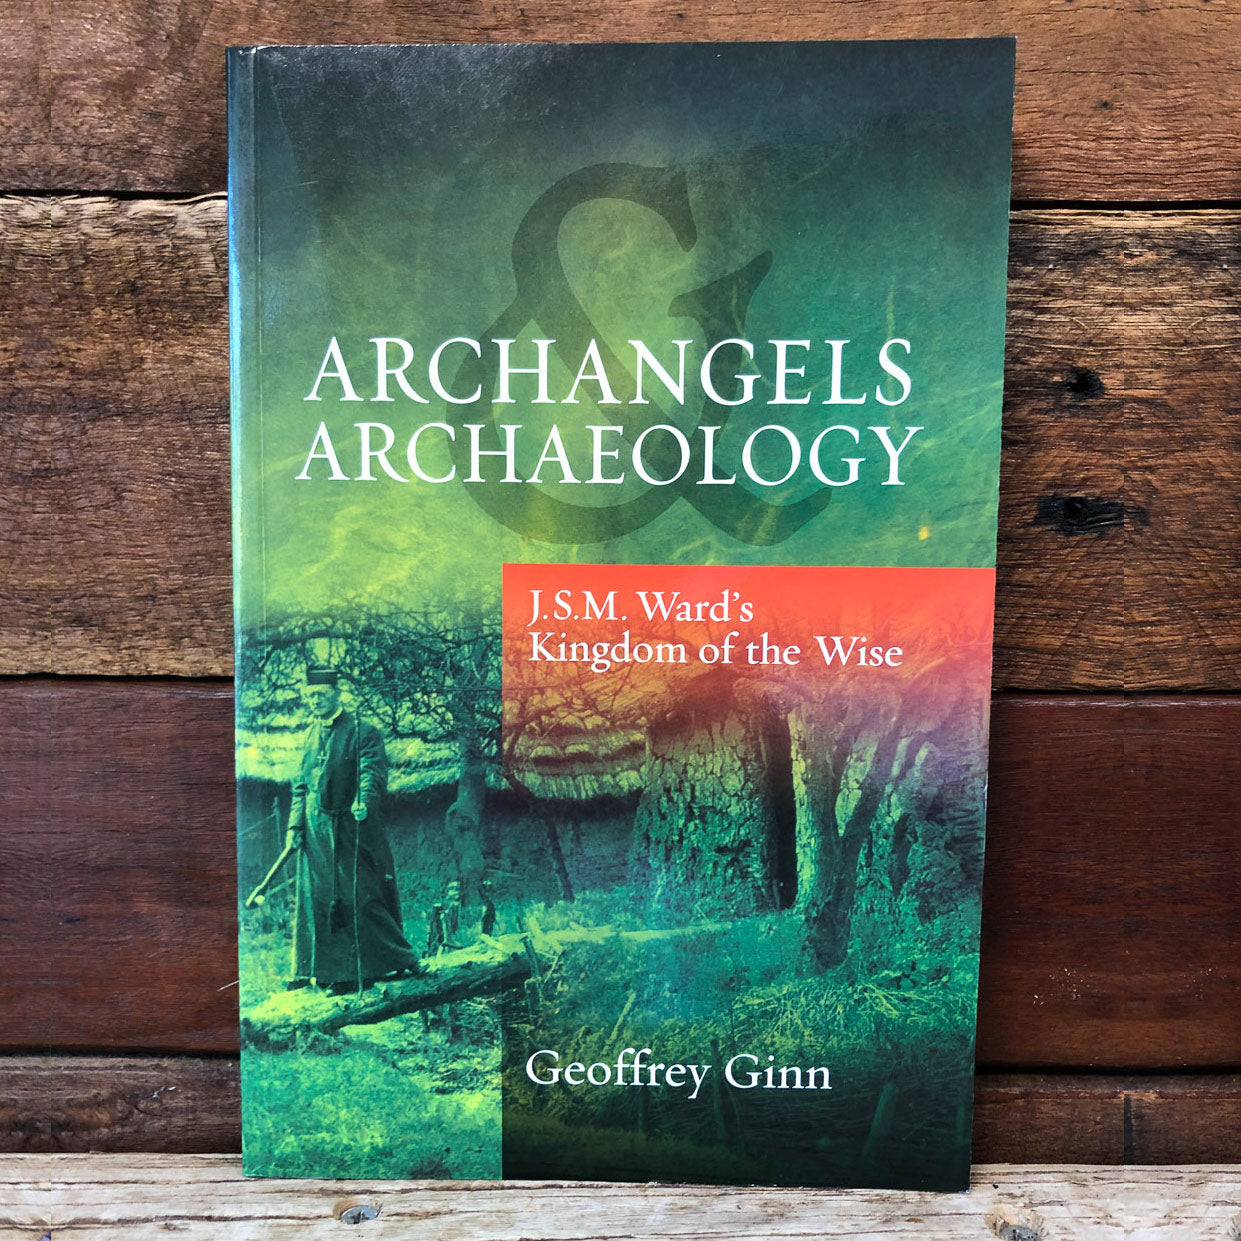 'Archangels & Archaeology' by Geoffrey Ginn